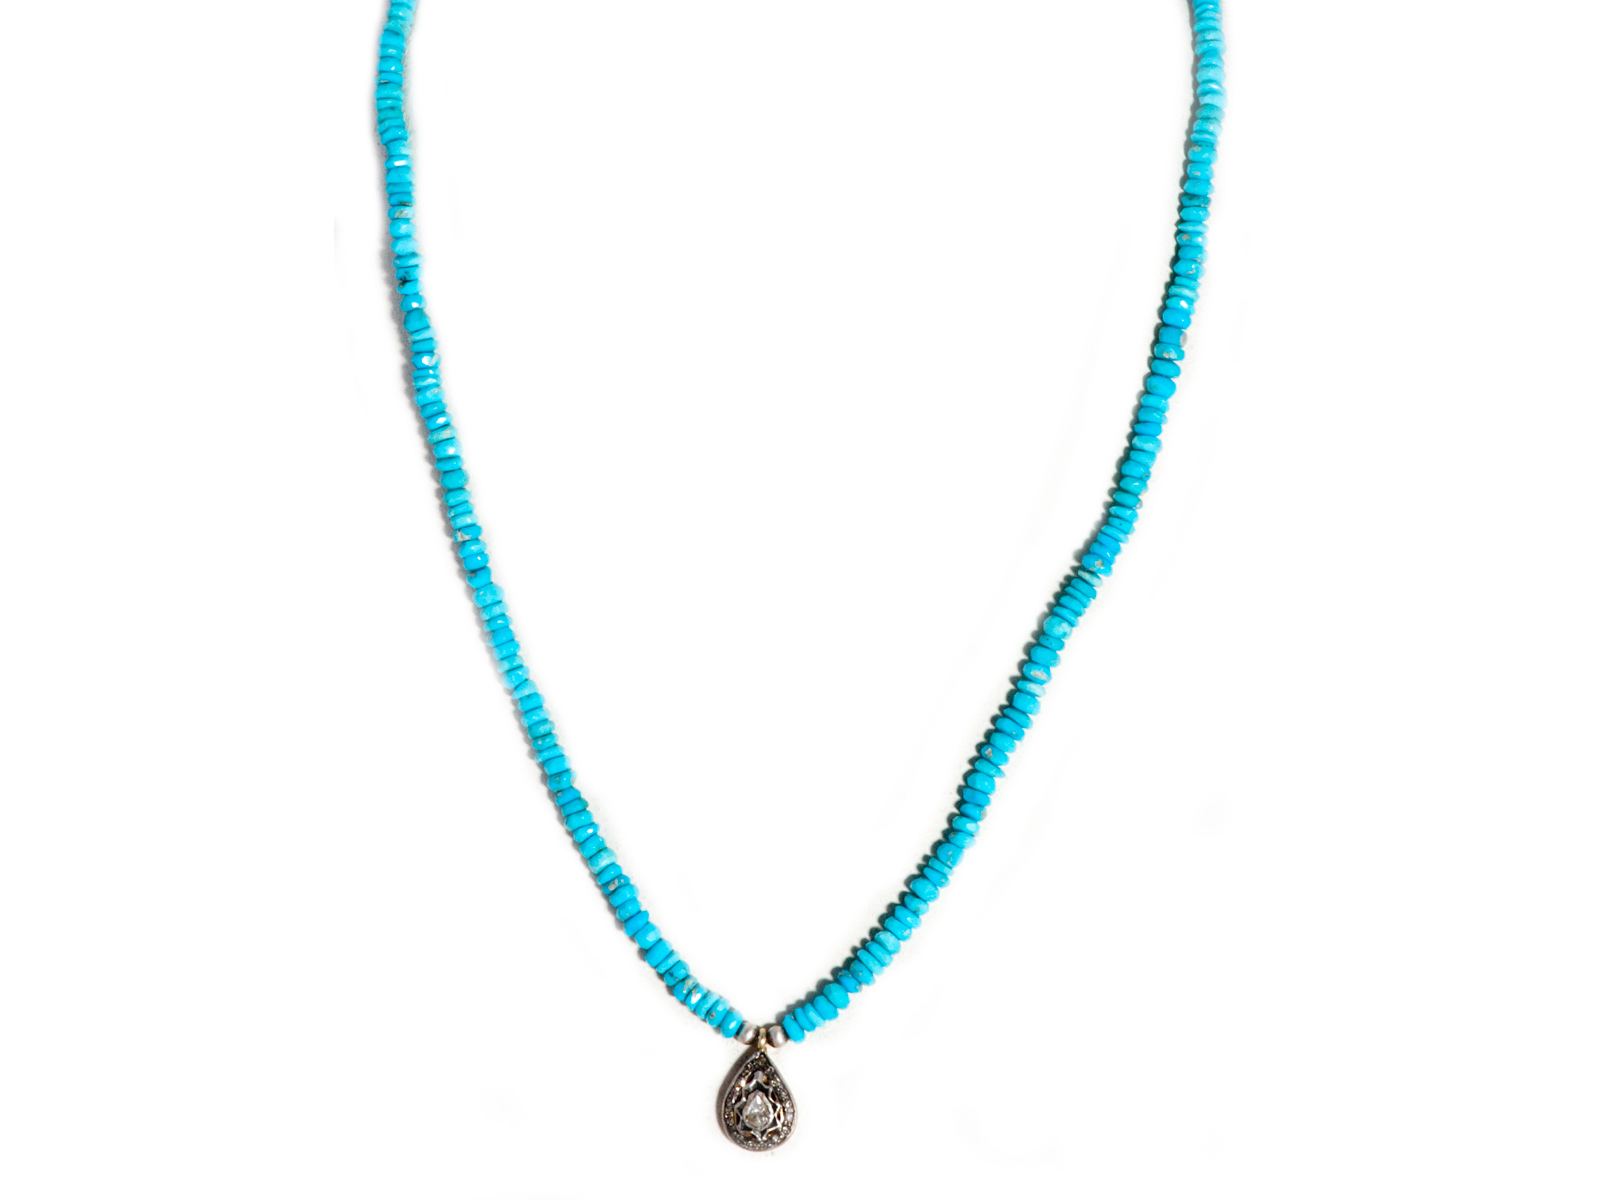 Sleeping Beauty Turquoise Diamond Necklace